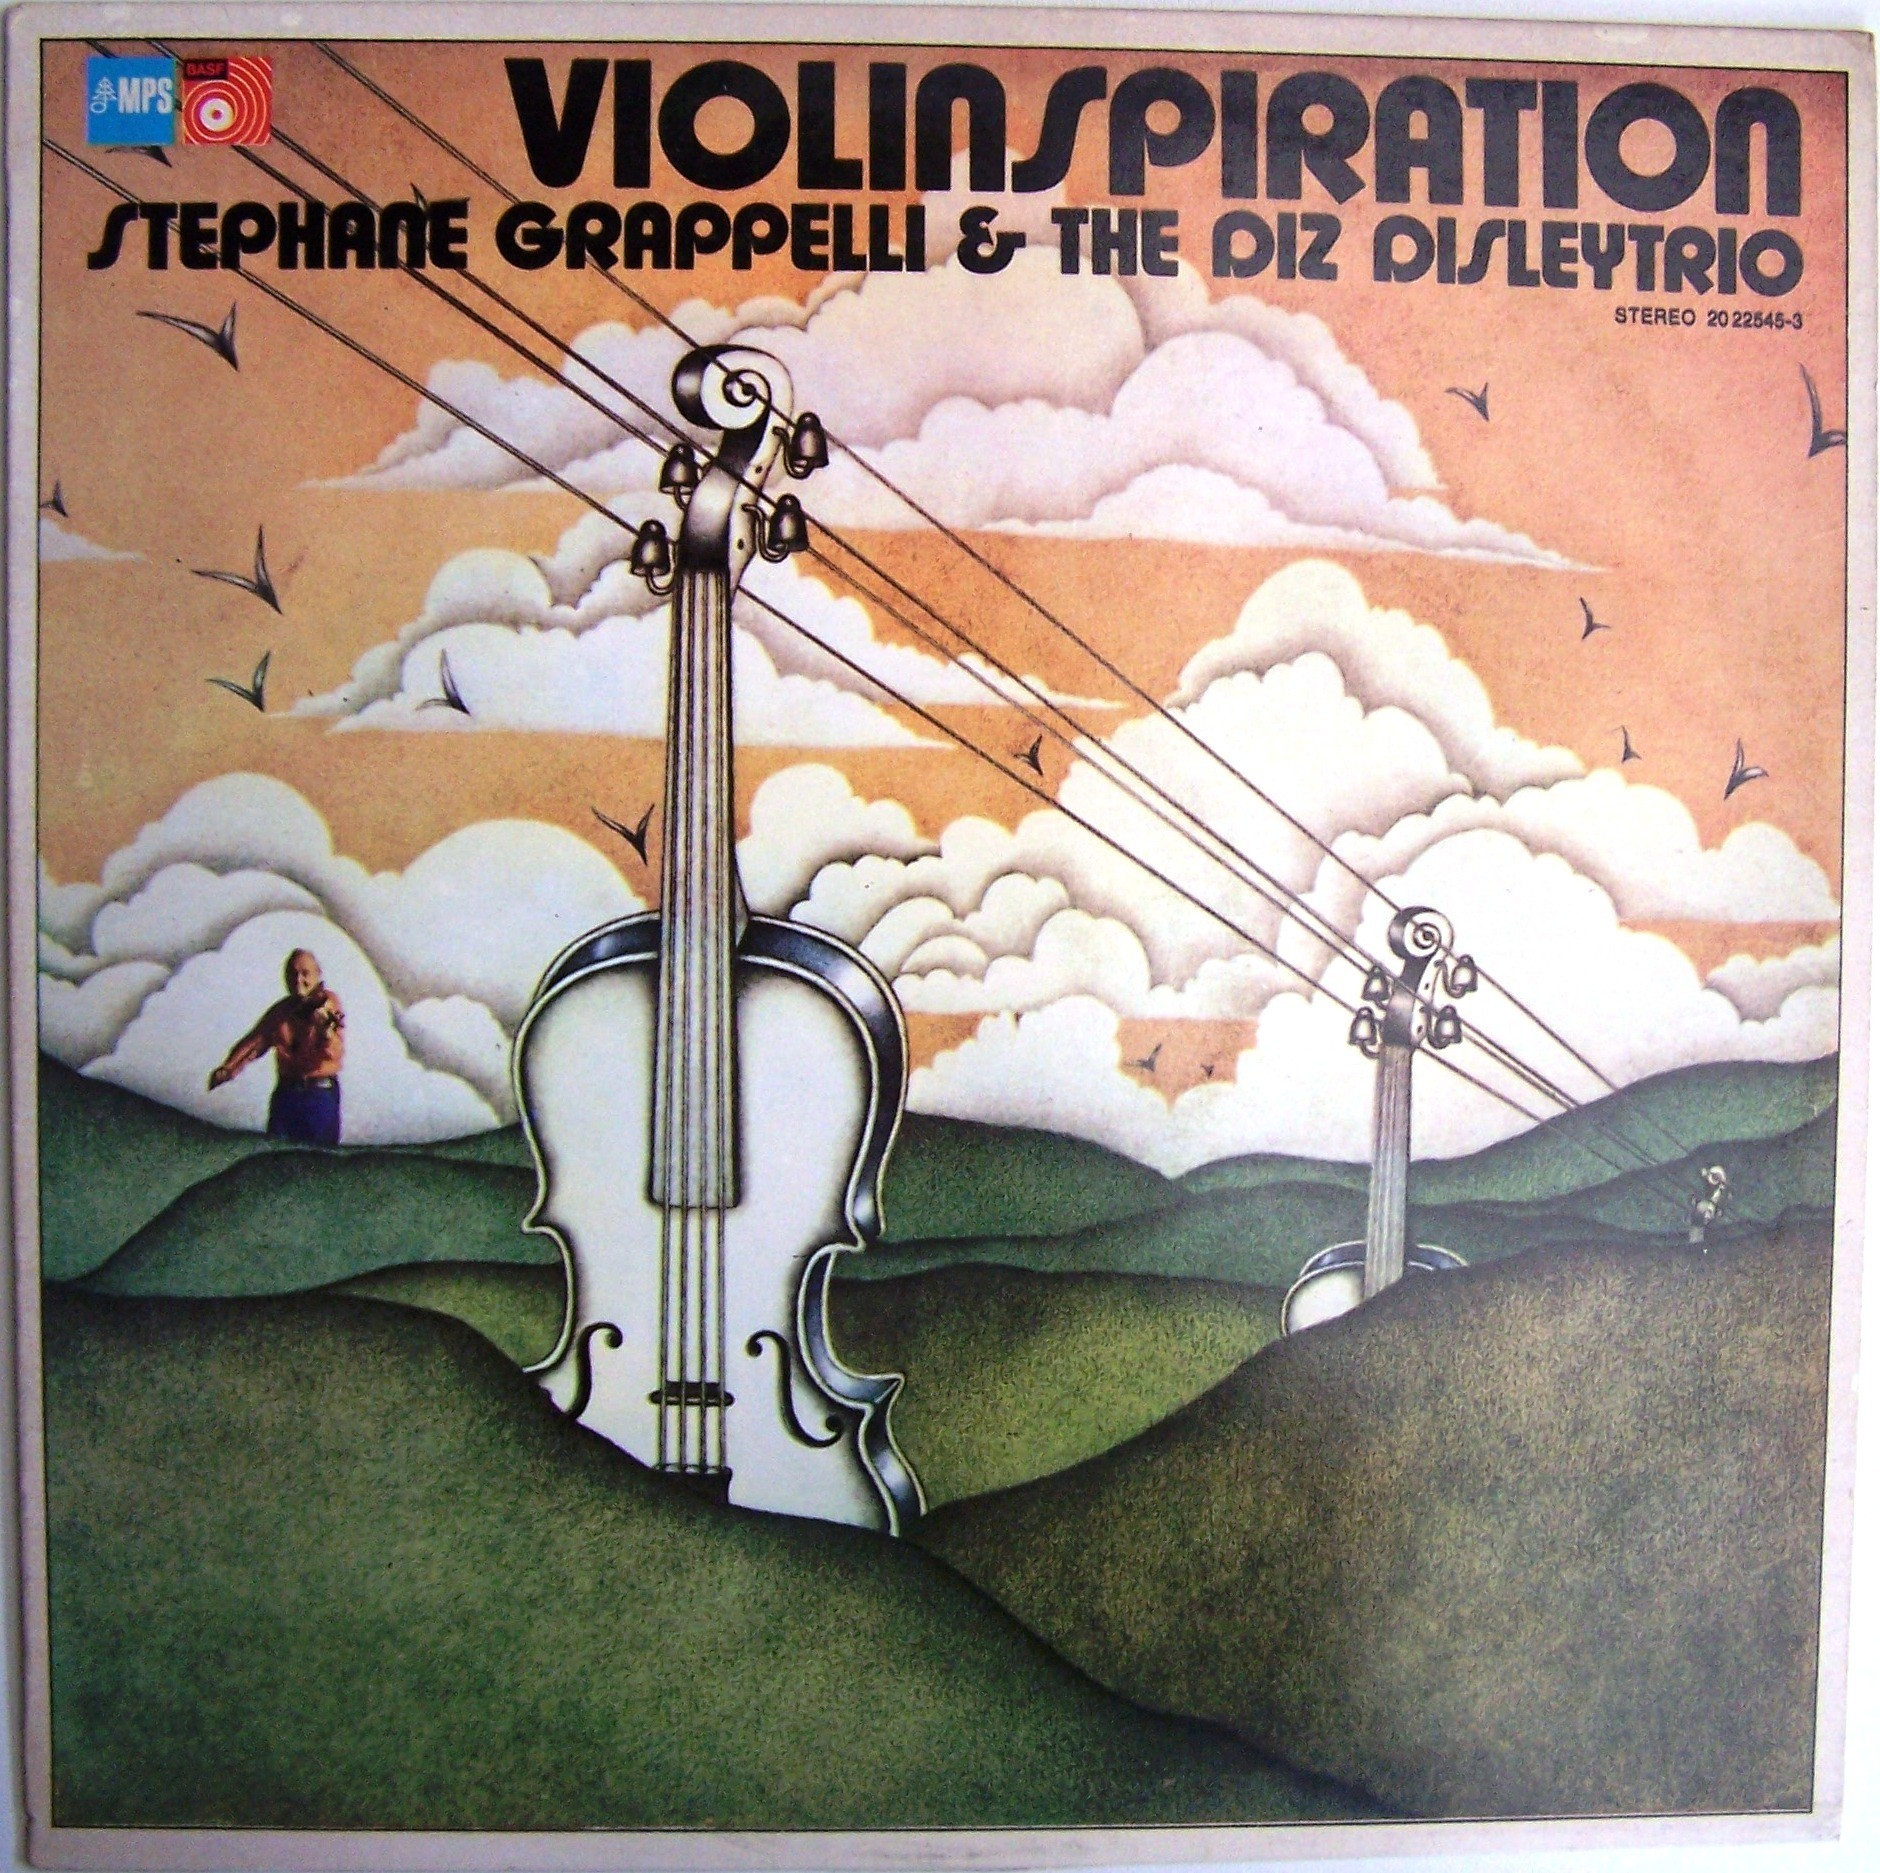 Grappelli Stephane The Diz Disleytrio - Violinspiration